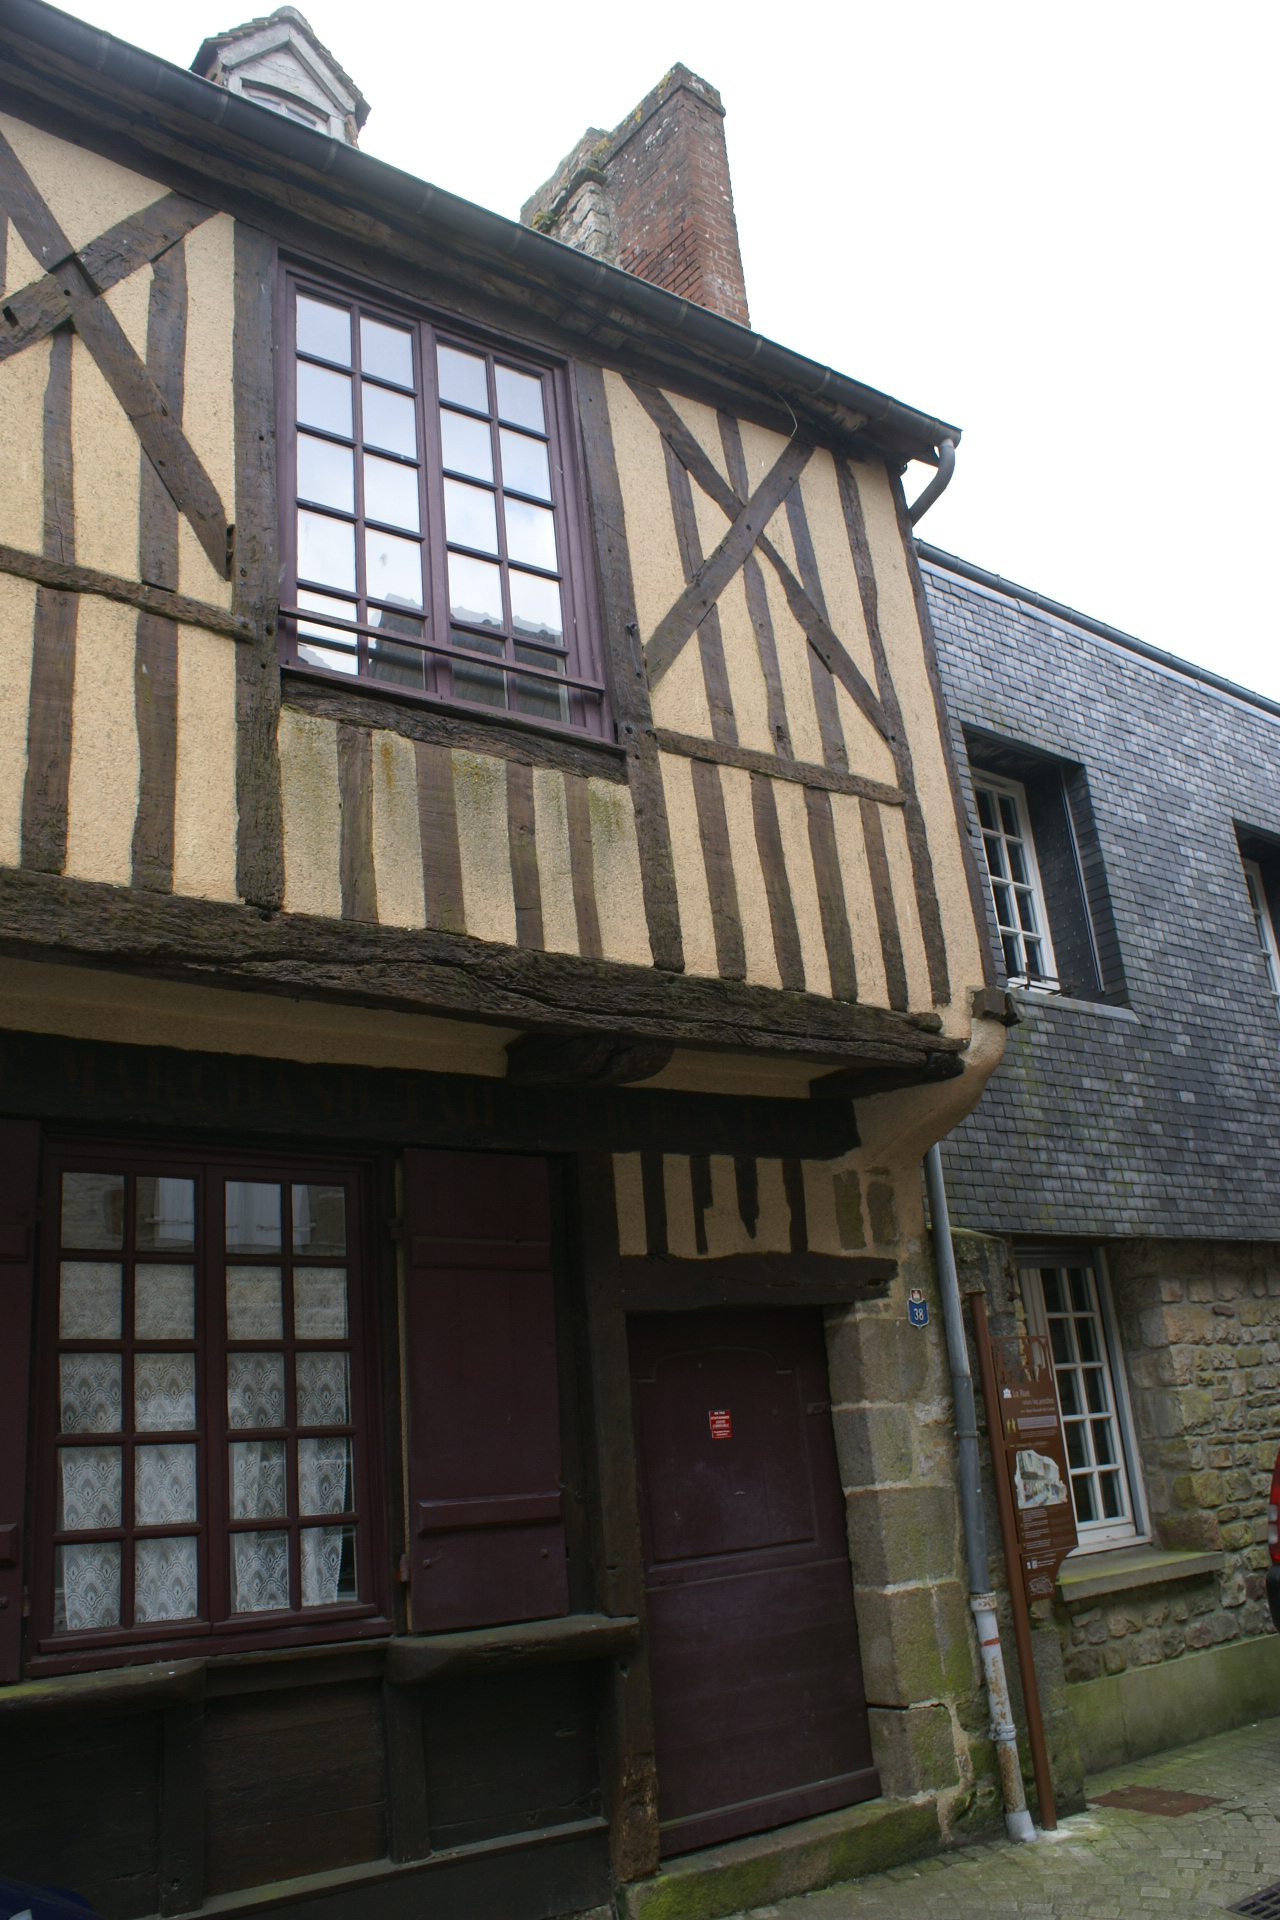 Medieval building at Domfront, Normandy